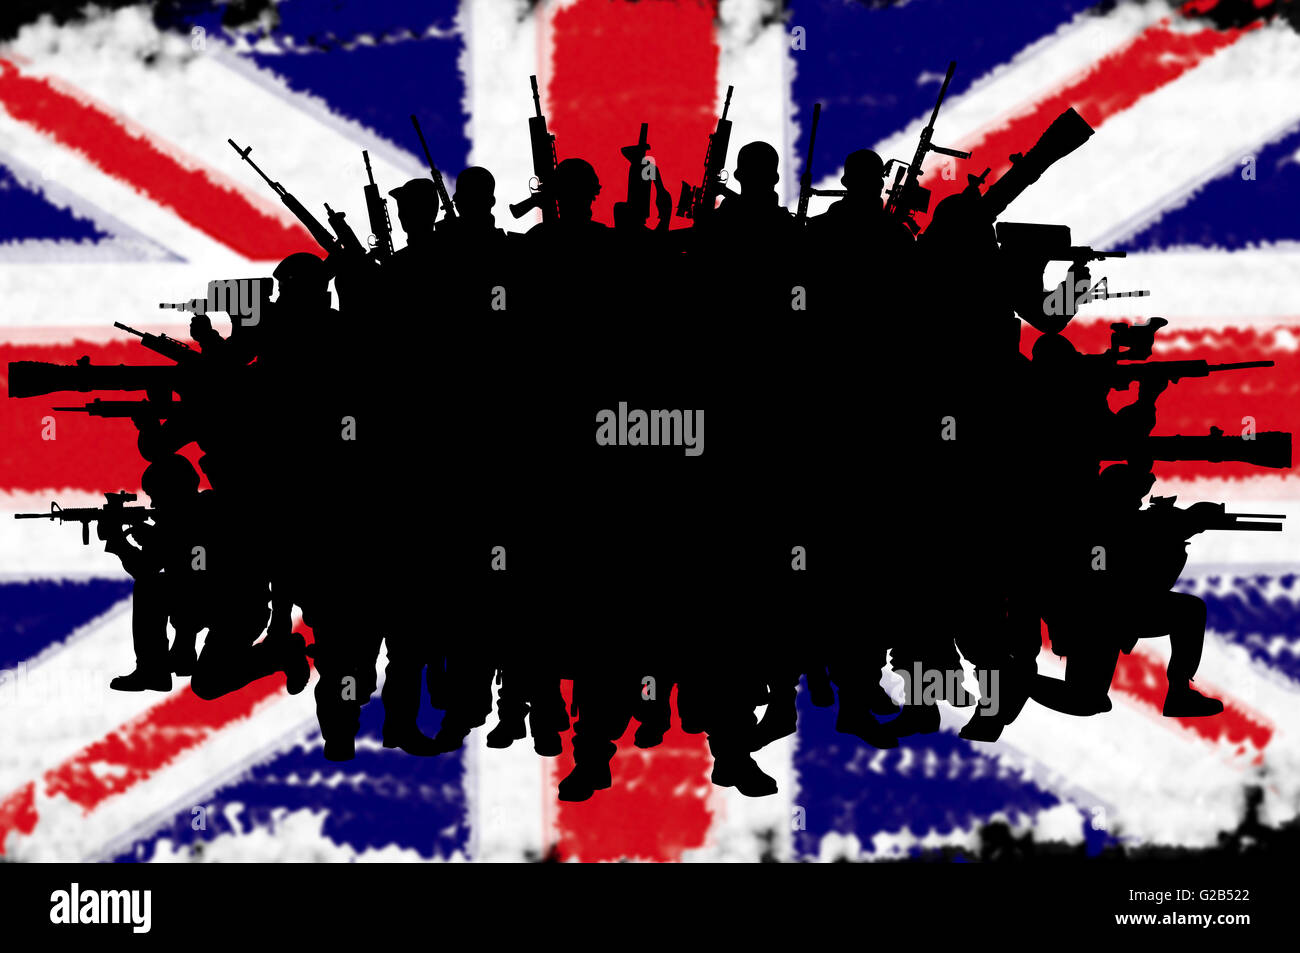 Great Britain or british army concept silhouettes on flag background - Stock Image